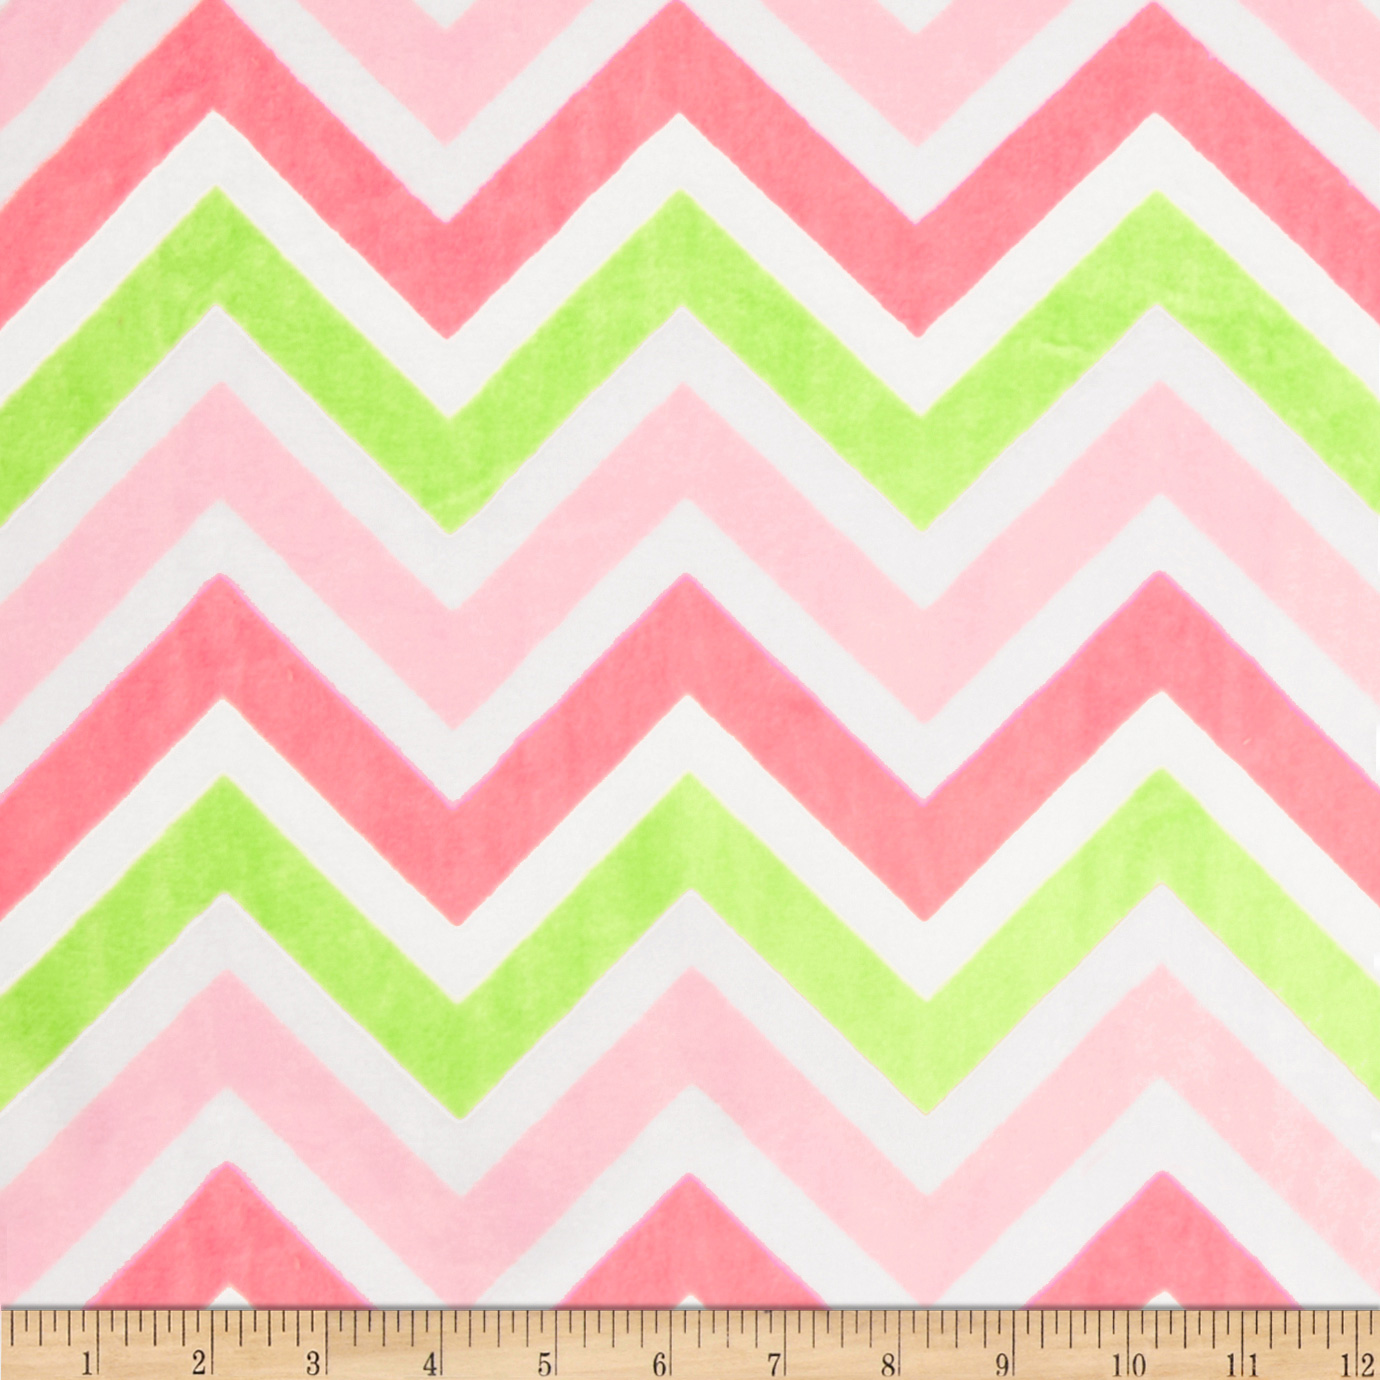 Minky Cuddle Zig Zag Paris Pink/Lime/Snow